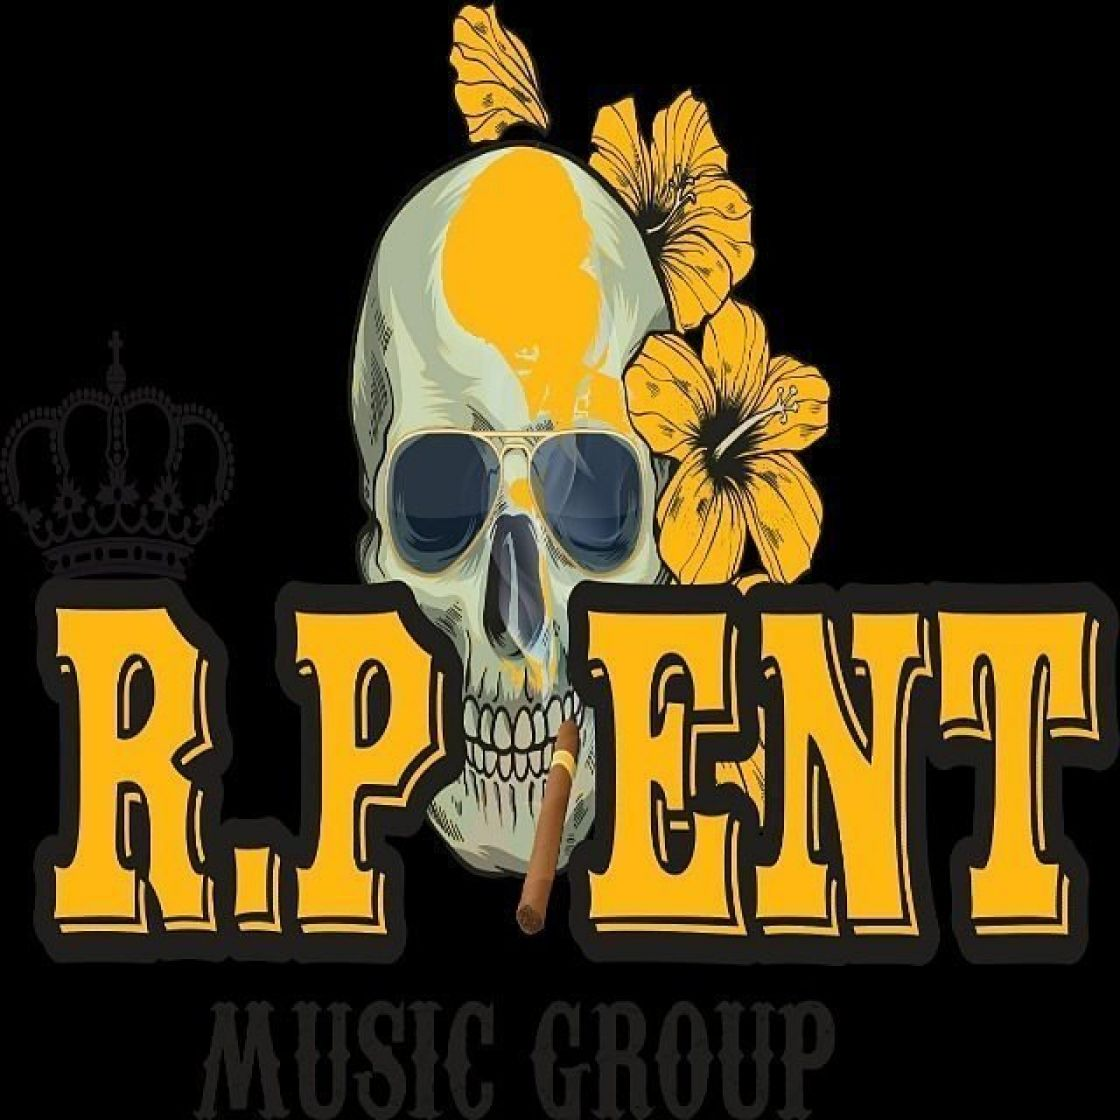 Introducing R.P ENT MUSIC GROUP production with two new hits Remaness and Stupido!